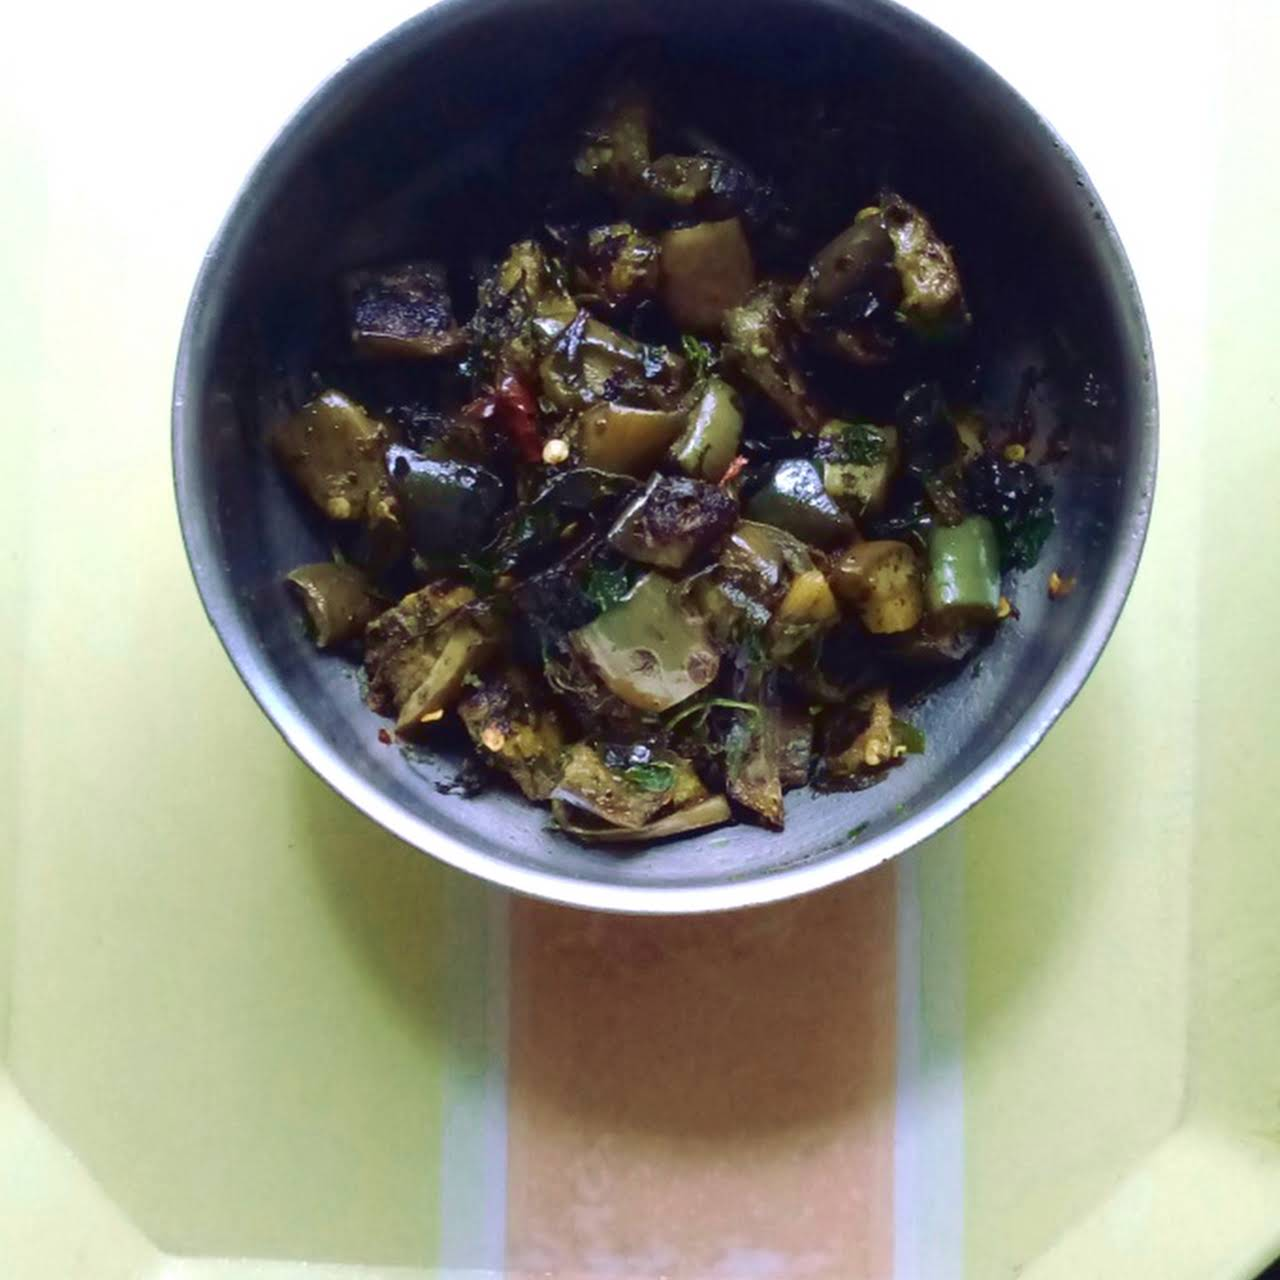 The most bitter Bengali food (Delicious & common food too)